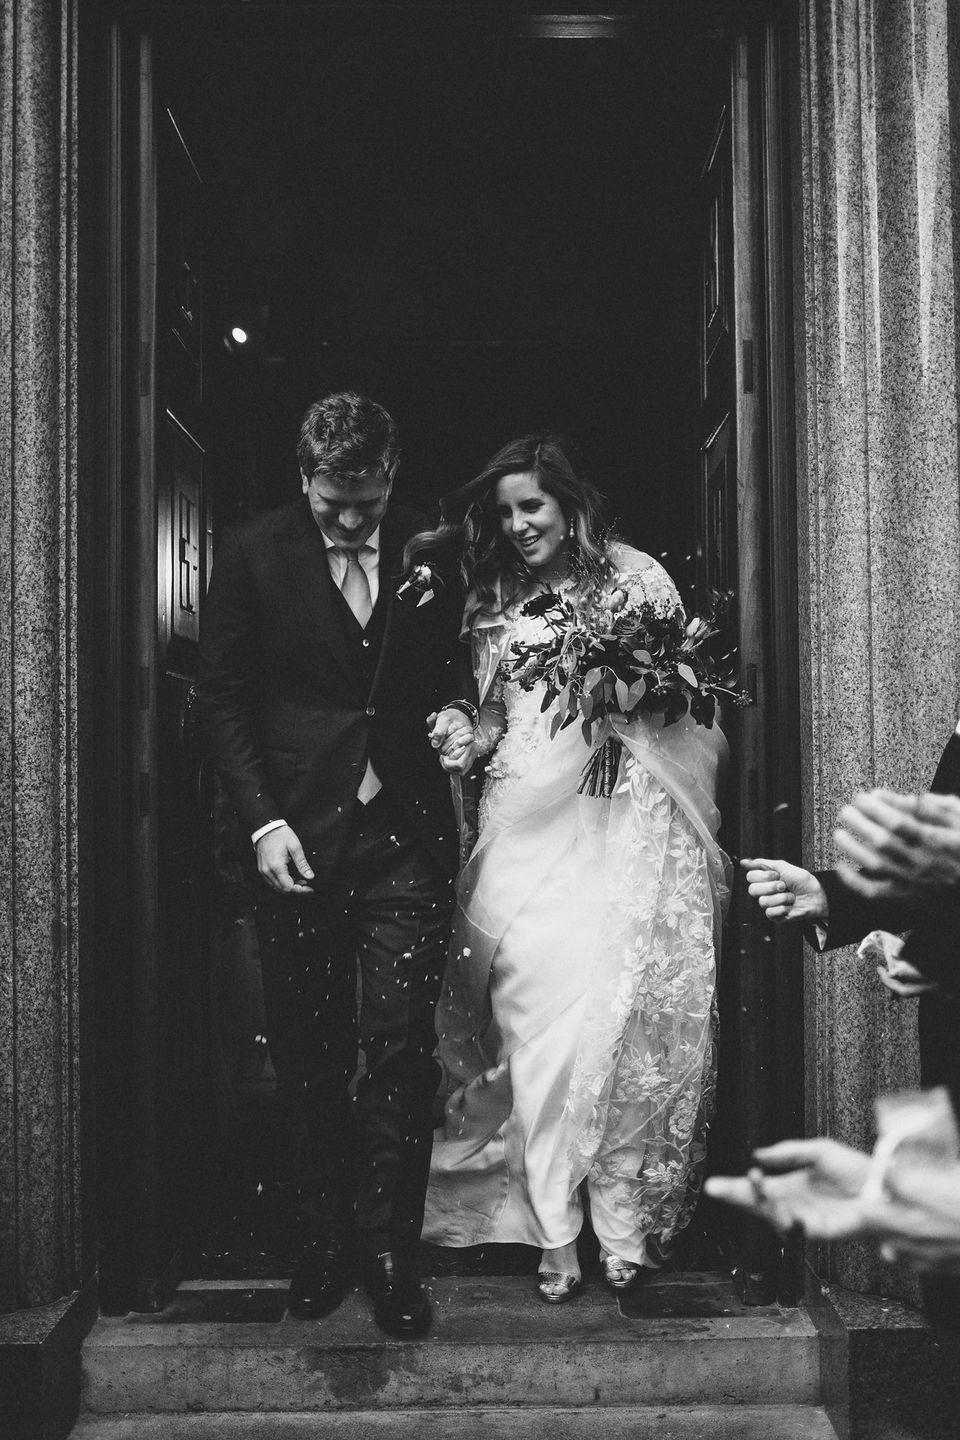 <p><strong>Wedding dress and cape:</strong> Bespoke design by Emma Victoria Payne</p><p><strong>Shoes:</strong> Jimmy Choo</p><p><strong>Earrings:</strong> Vintage (from her grandmother)</p>